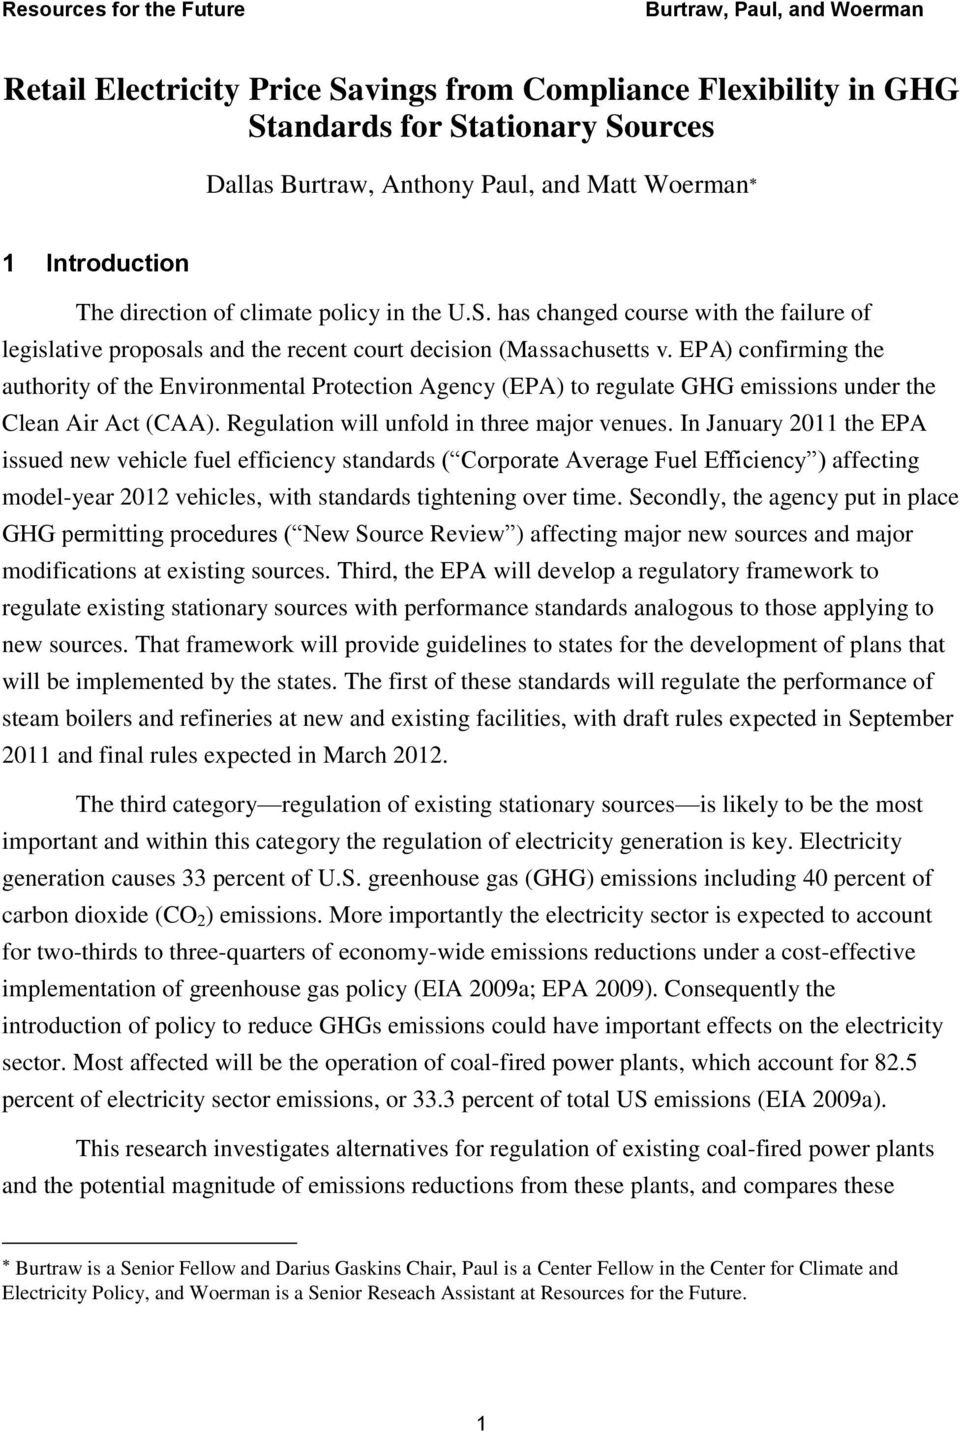 EPA) confirming the authority of the Environmental Protection Agency (EPA) to regulate GHG emissions under the Clean Air Act (CAA). Regulation will unfold in three major venues.